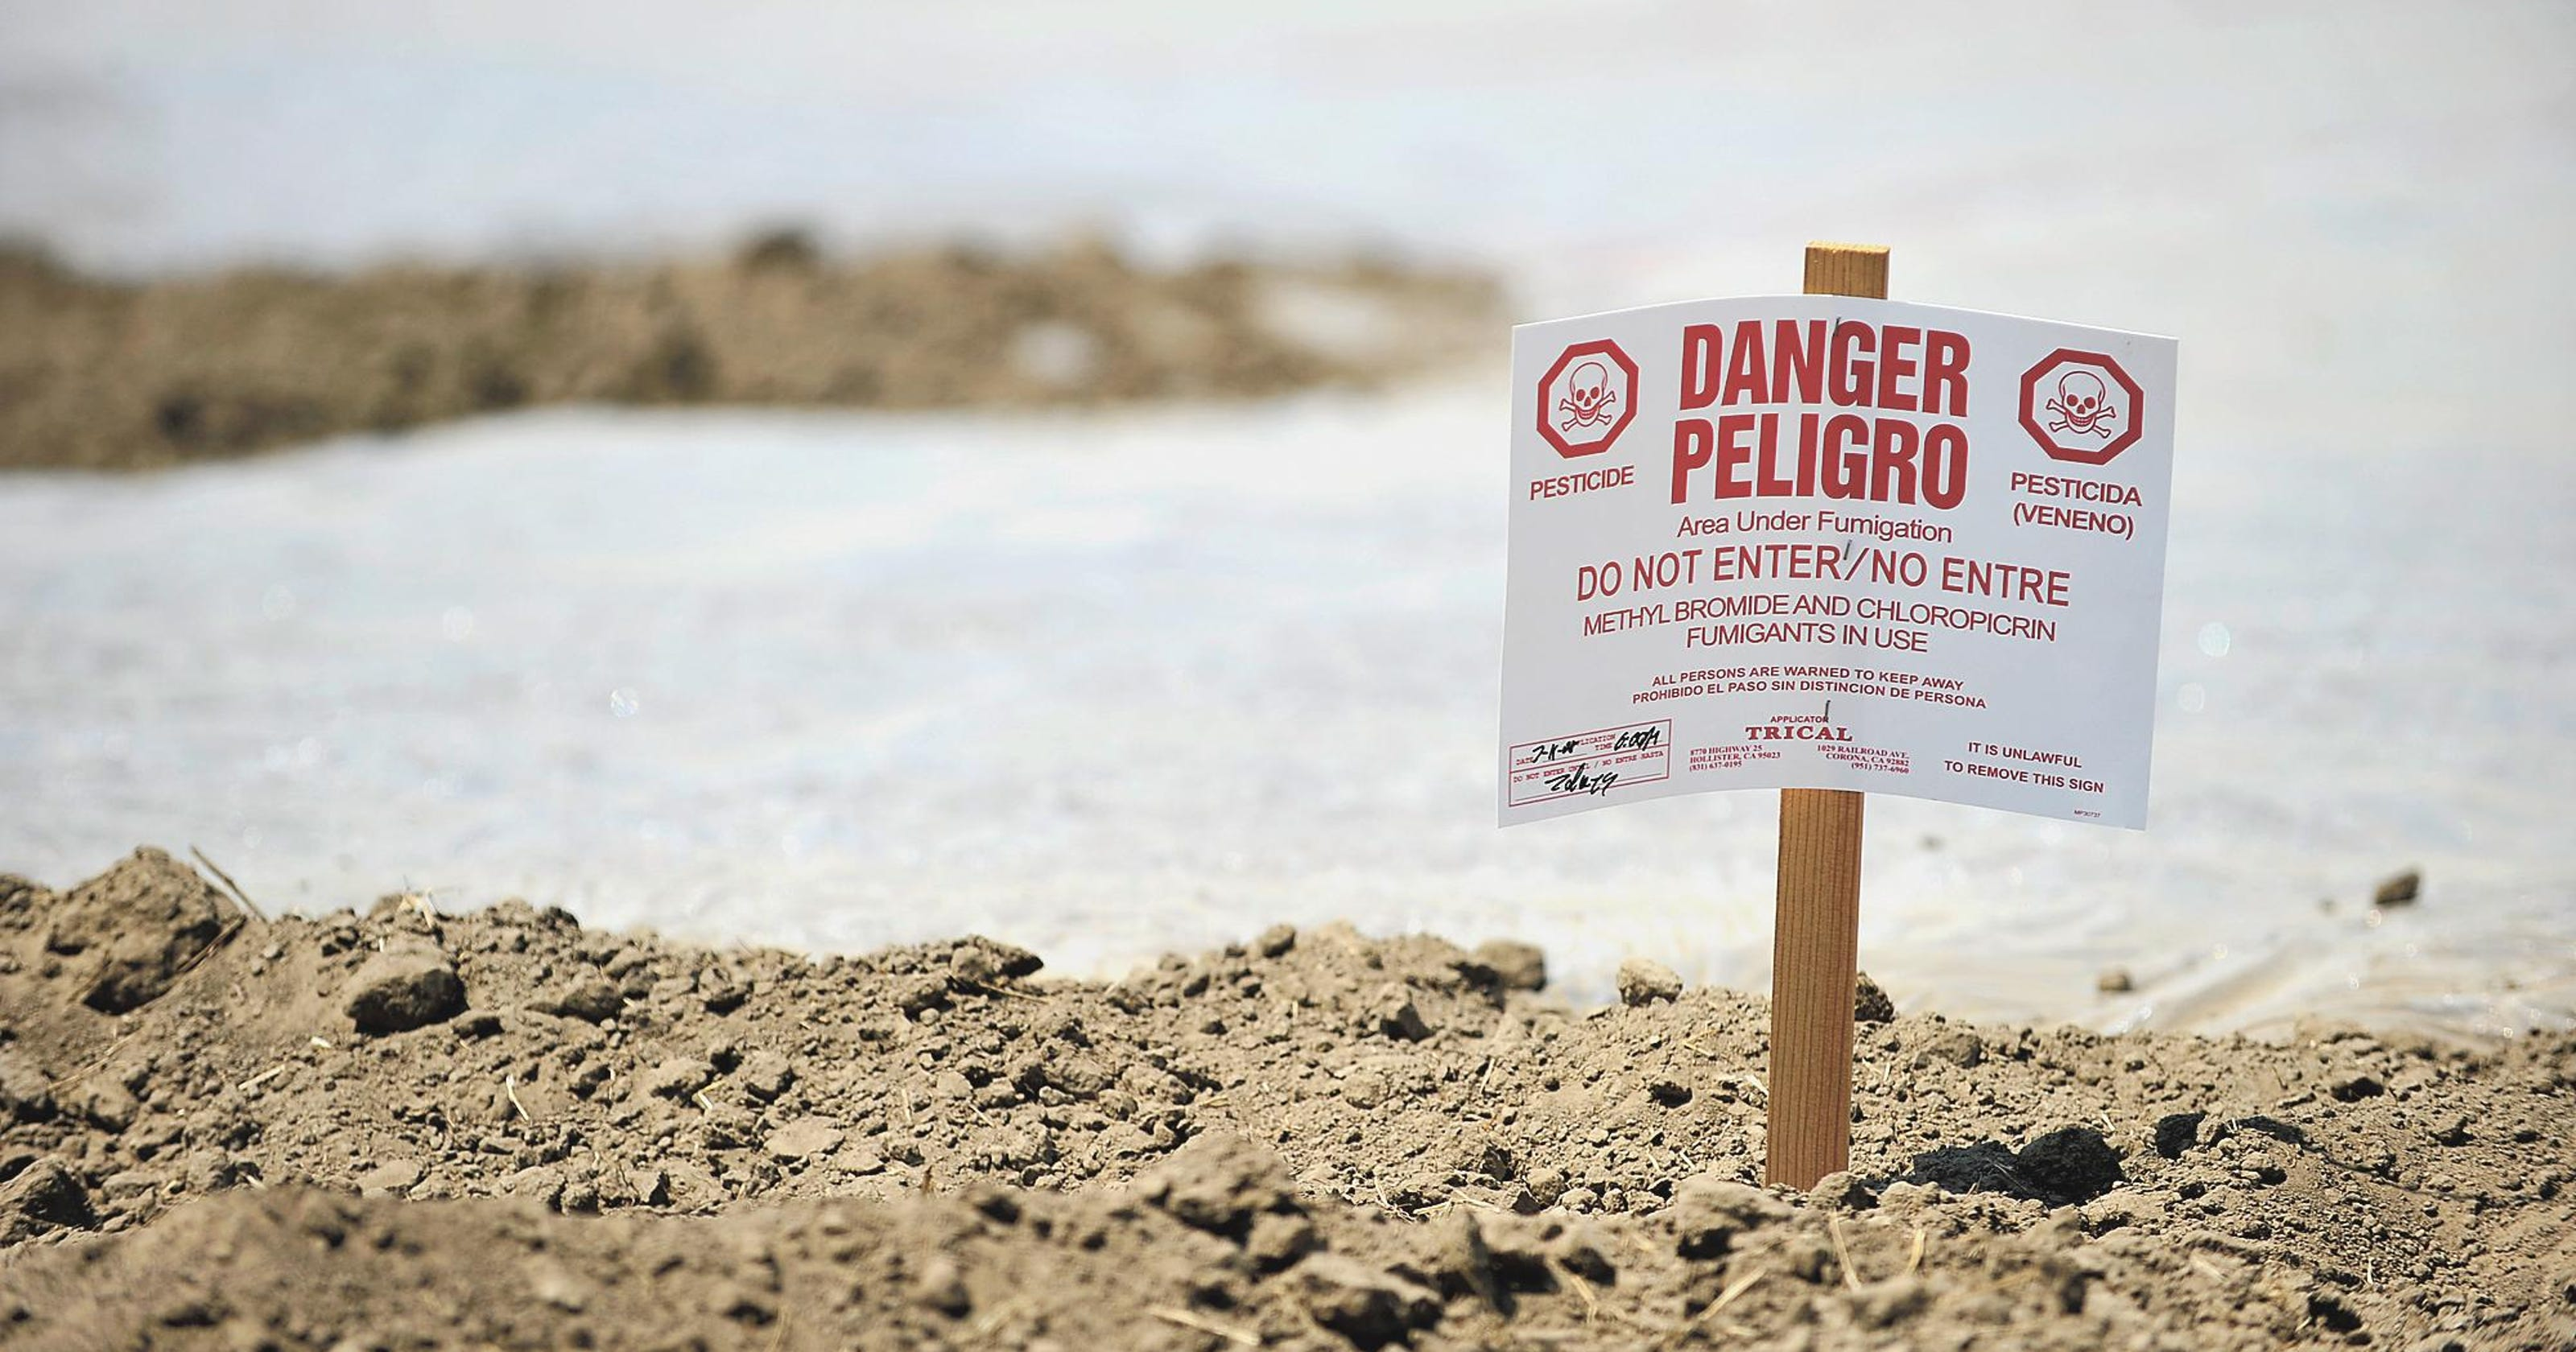 Tulare County residents advocate banning a harmful pesticide